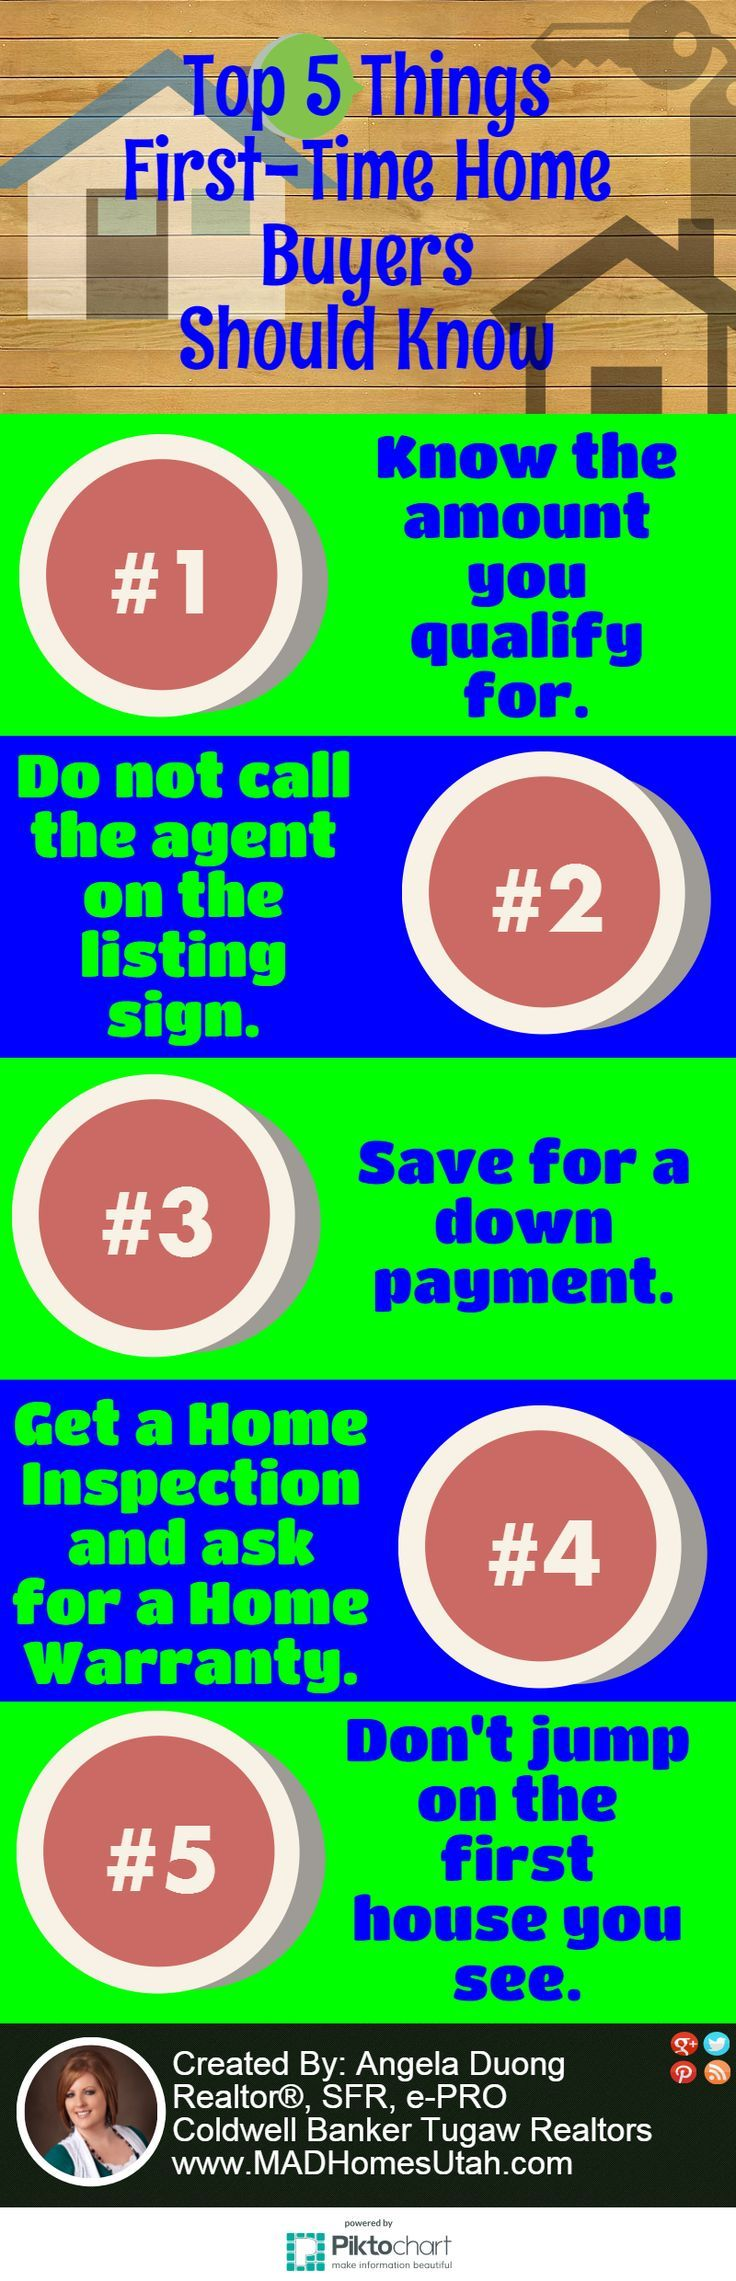 75 best first time home buyer images on pinterest | buying a home